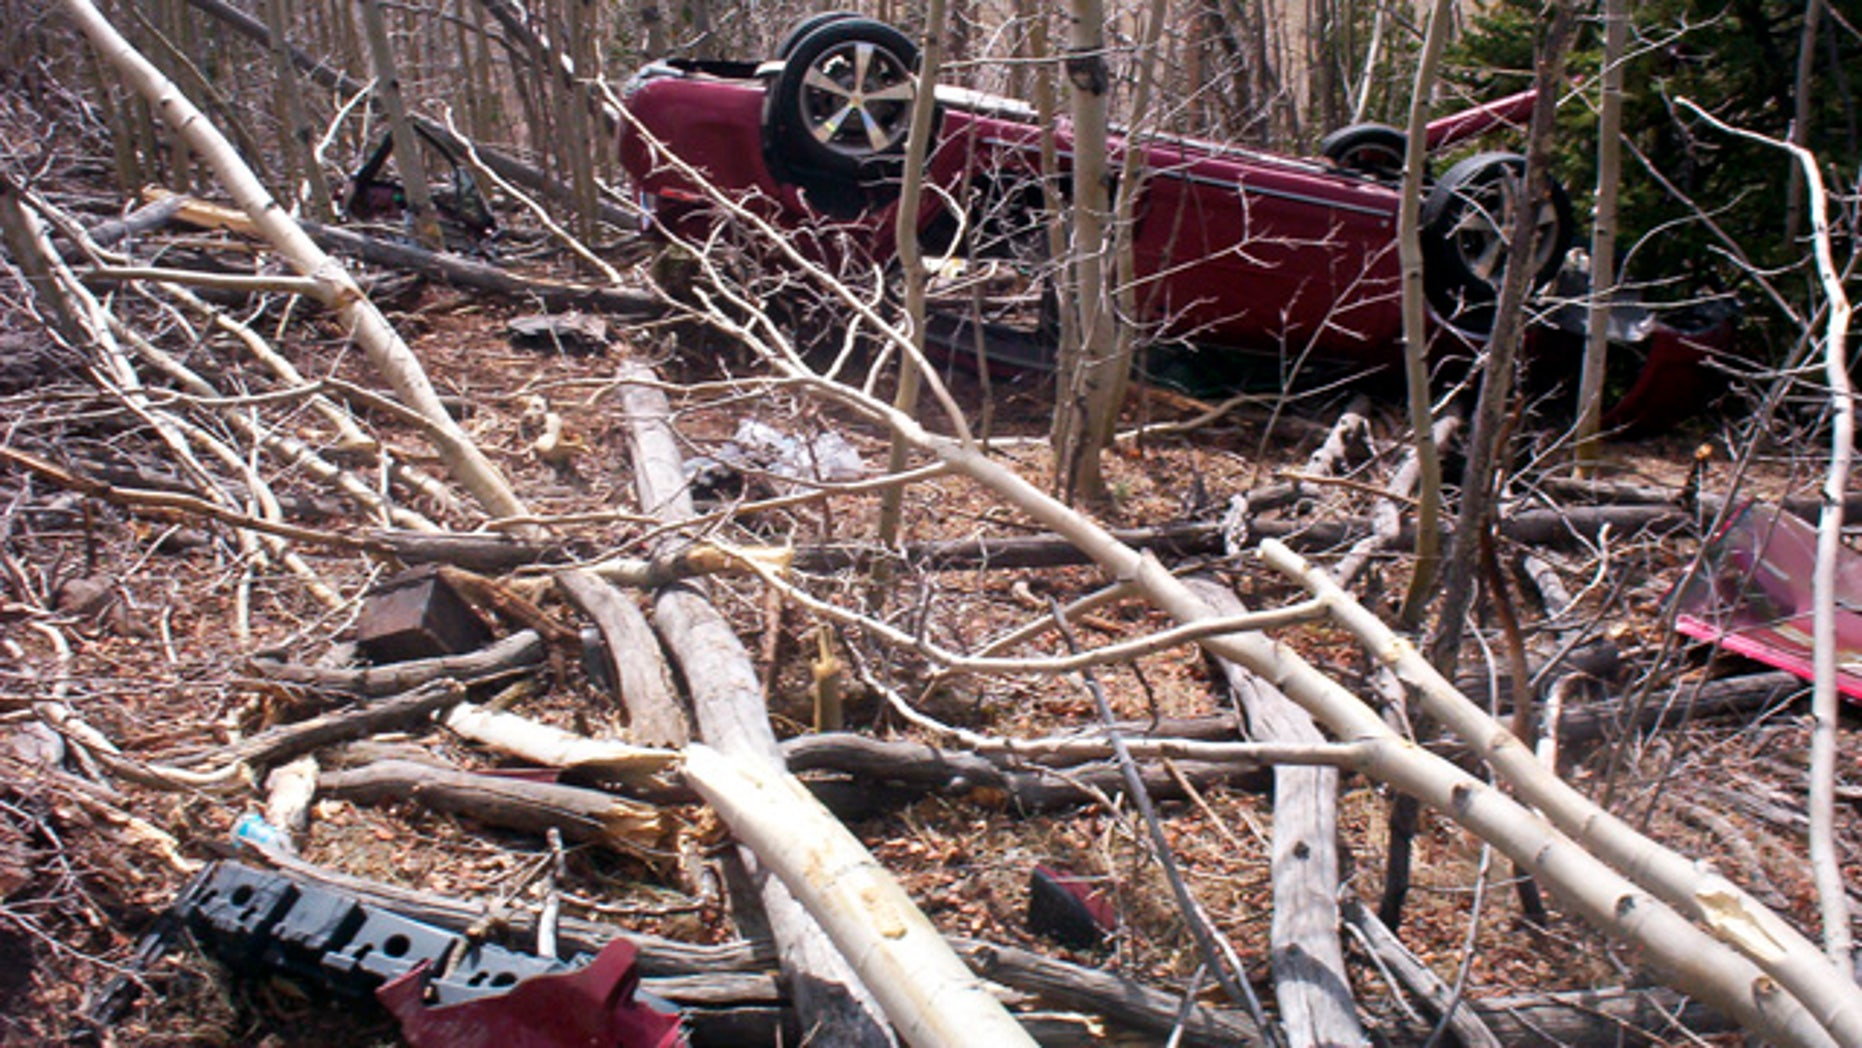 May 4, 2013: In this photo provided by the Park County Sheriffs Office, Kristin Hopkins' car is seen after she drove off the roadway near the old mining town of Fairplay, Colo., sometime after she was last seen on April 27. (AP Photo/Park County Sheriffs Office)